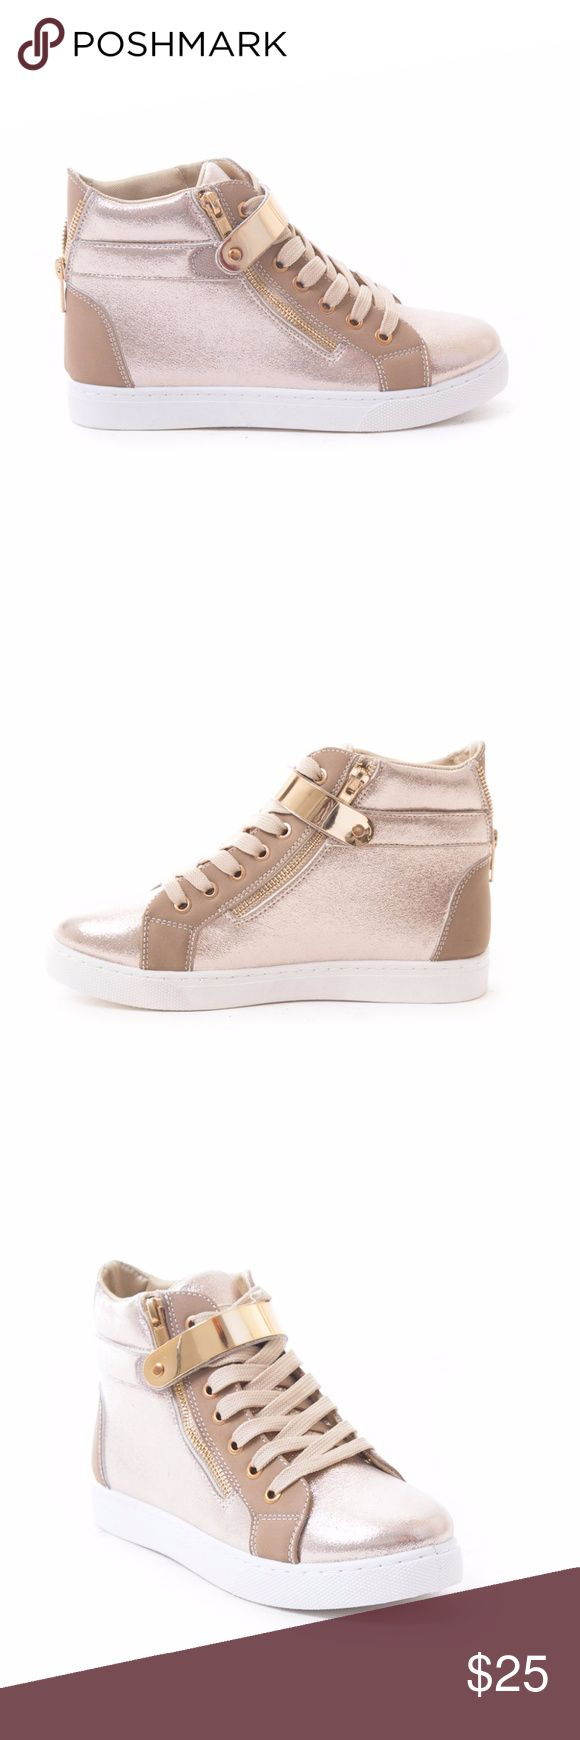 """Women's Metallic High Top Sneakers Be street chic with these fashion high top sneakers. These stylish sneakers feature a gold metal wrap-around strap, a side zipper, and a back zipper. These sneakers are available in black, rose gold, and white. Soho Shoes Fashion Sneakers are great with skinny jeans, skirts, casual dresses, and shorts.  •Padded tongue and collar for ultimate comfort •Ankle support by high-top upper  •Material: synthetic leather, lightweight •Approx. Measurement: 1"""" heel…"""